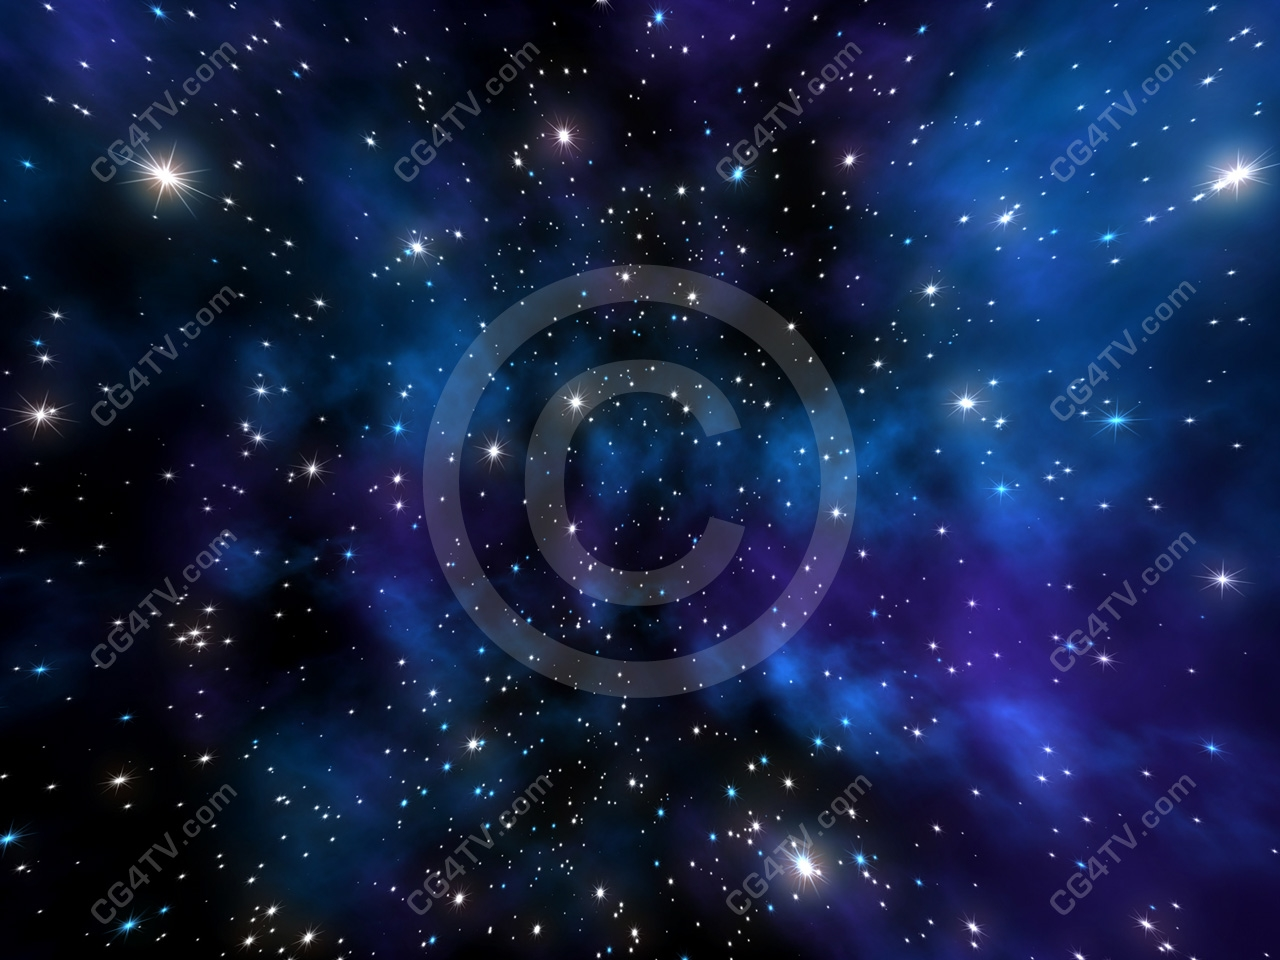 3d Space Background Wallpaper: Jimmy Here: 3d Space Background